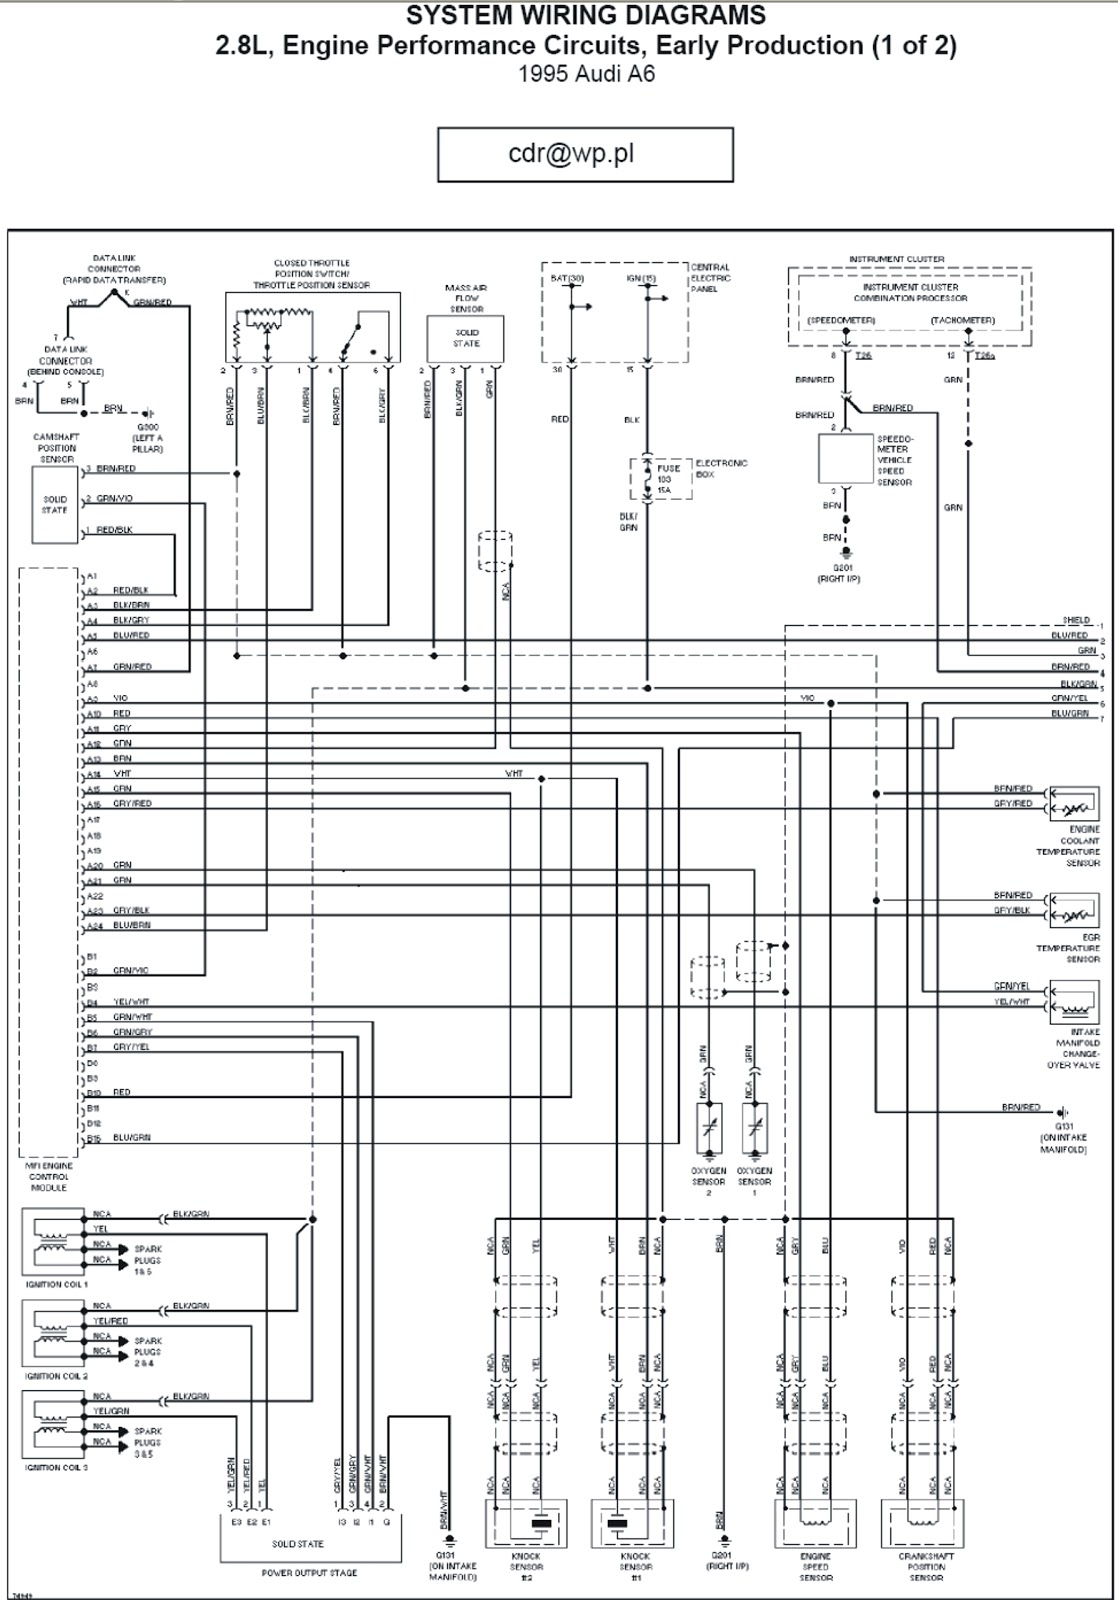 Audi Ac Wiring Diagrams Bookmark About Diagram A4 B6 04 Data Blog Rh 3 1 Schuerer Housekeeping De B5